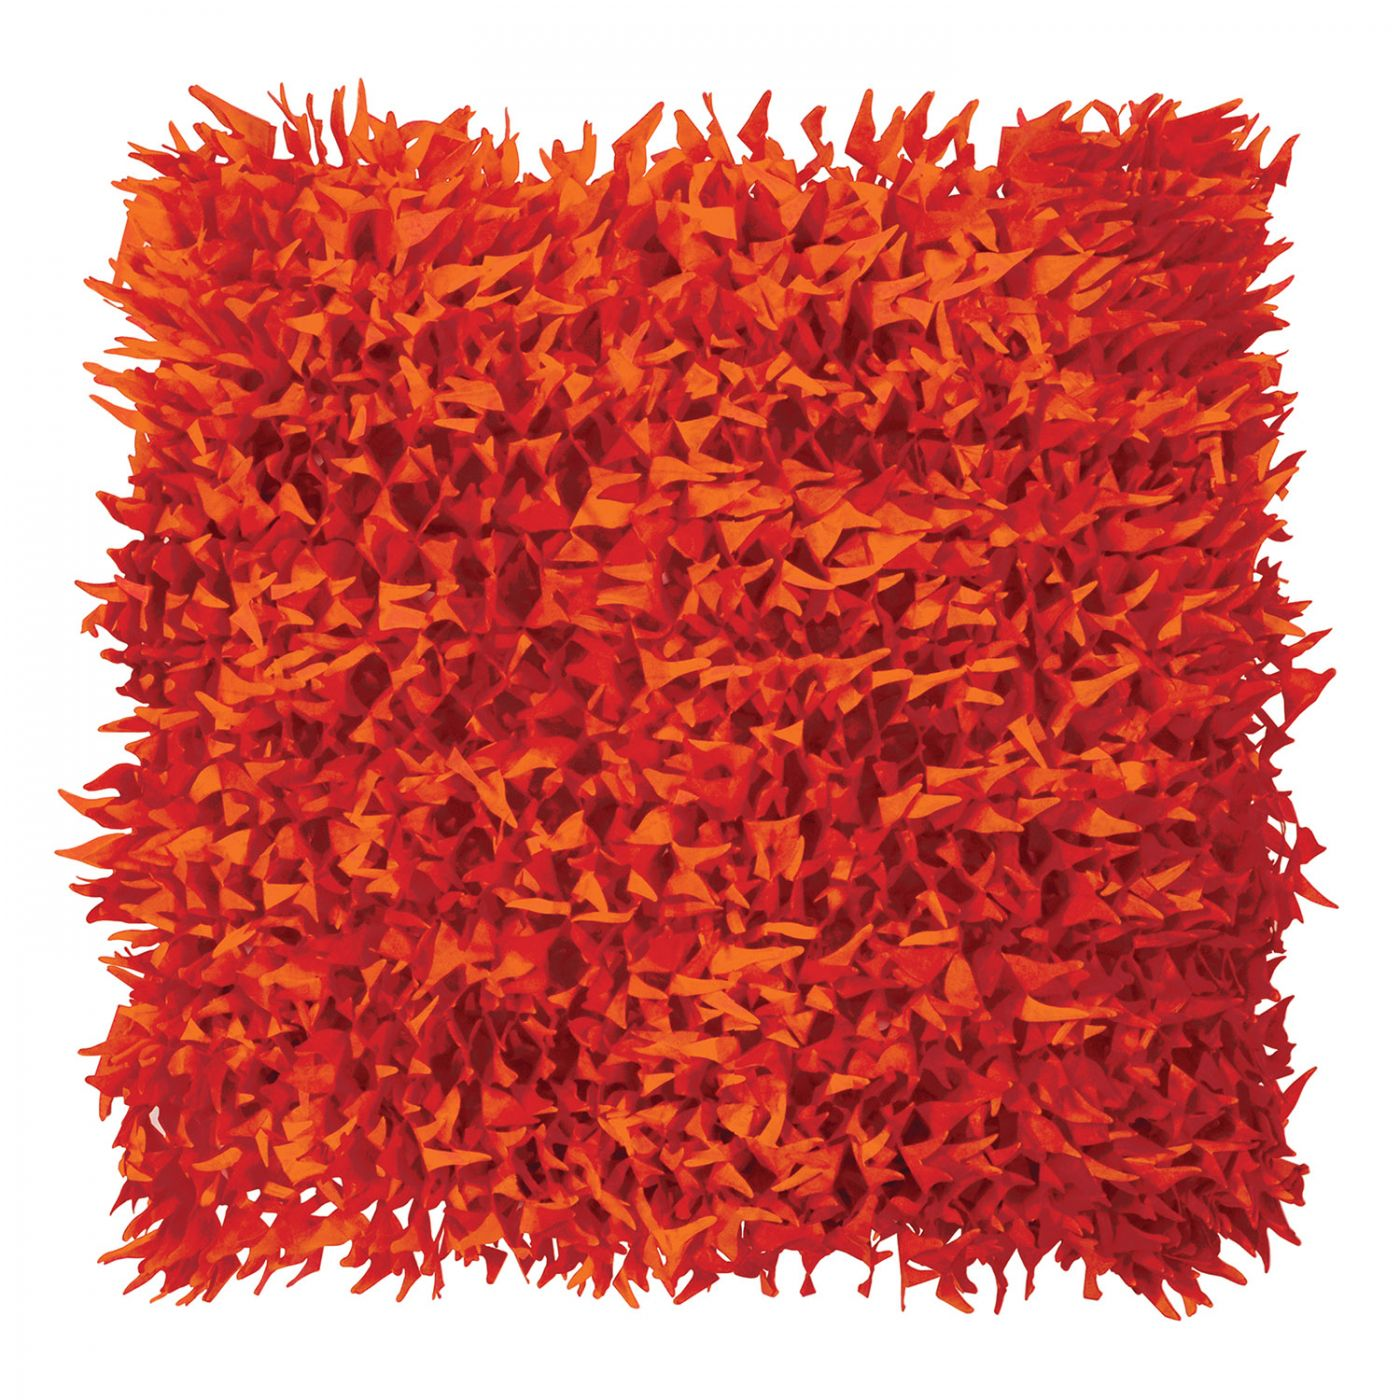 Flame Tissue Mats image